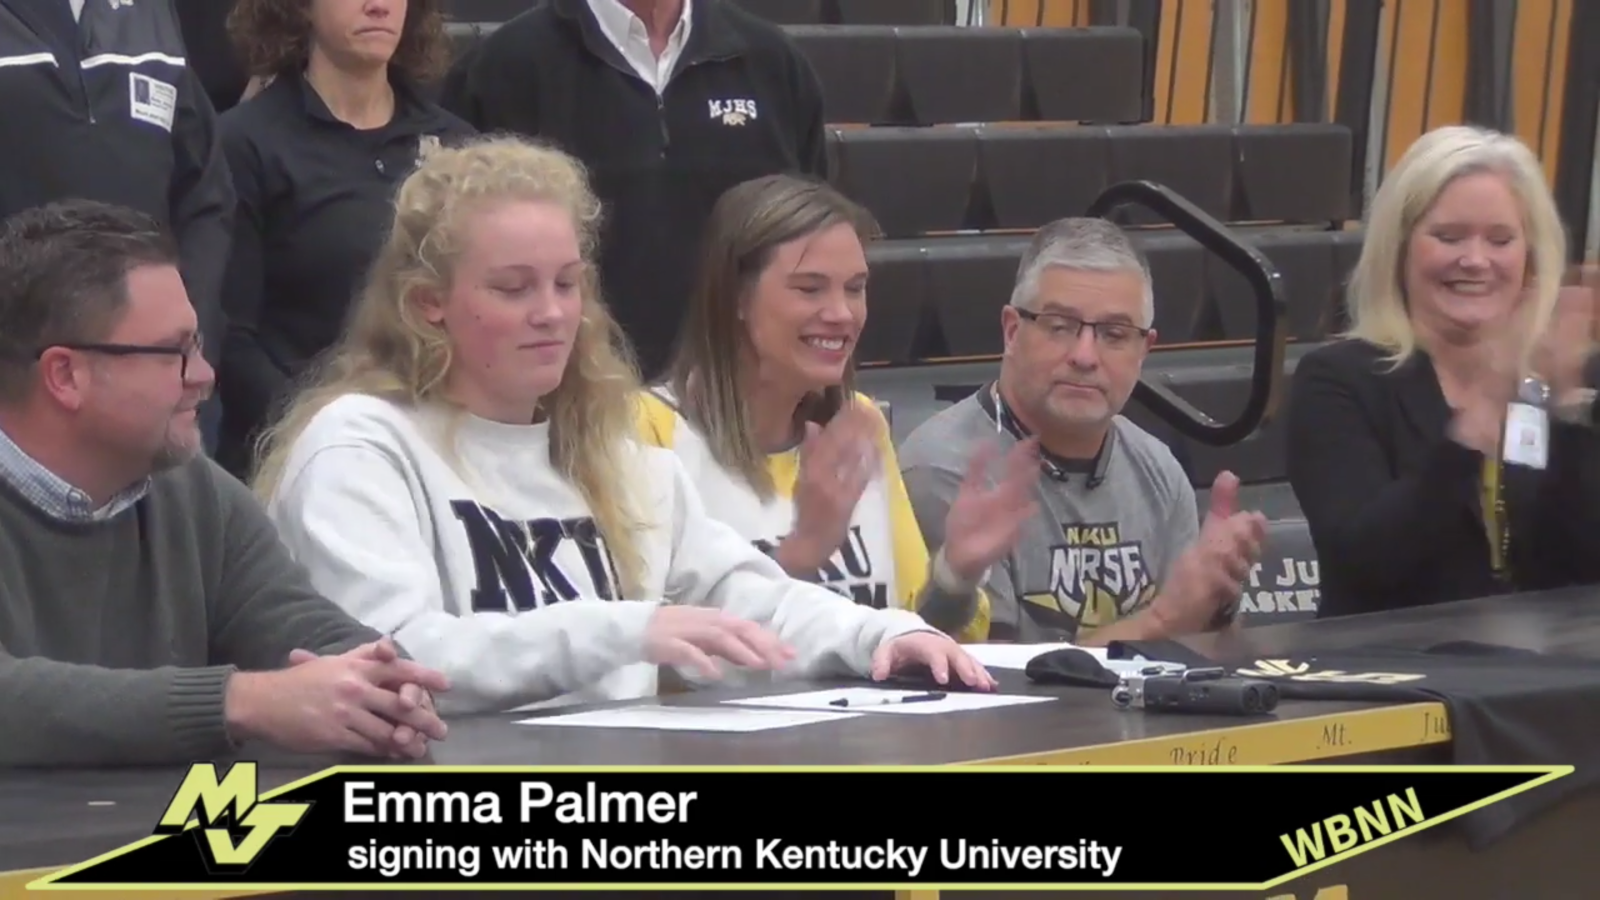 VIDEO: Emma Palmer signs with Northern Kentucky University